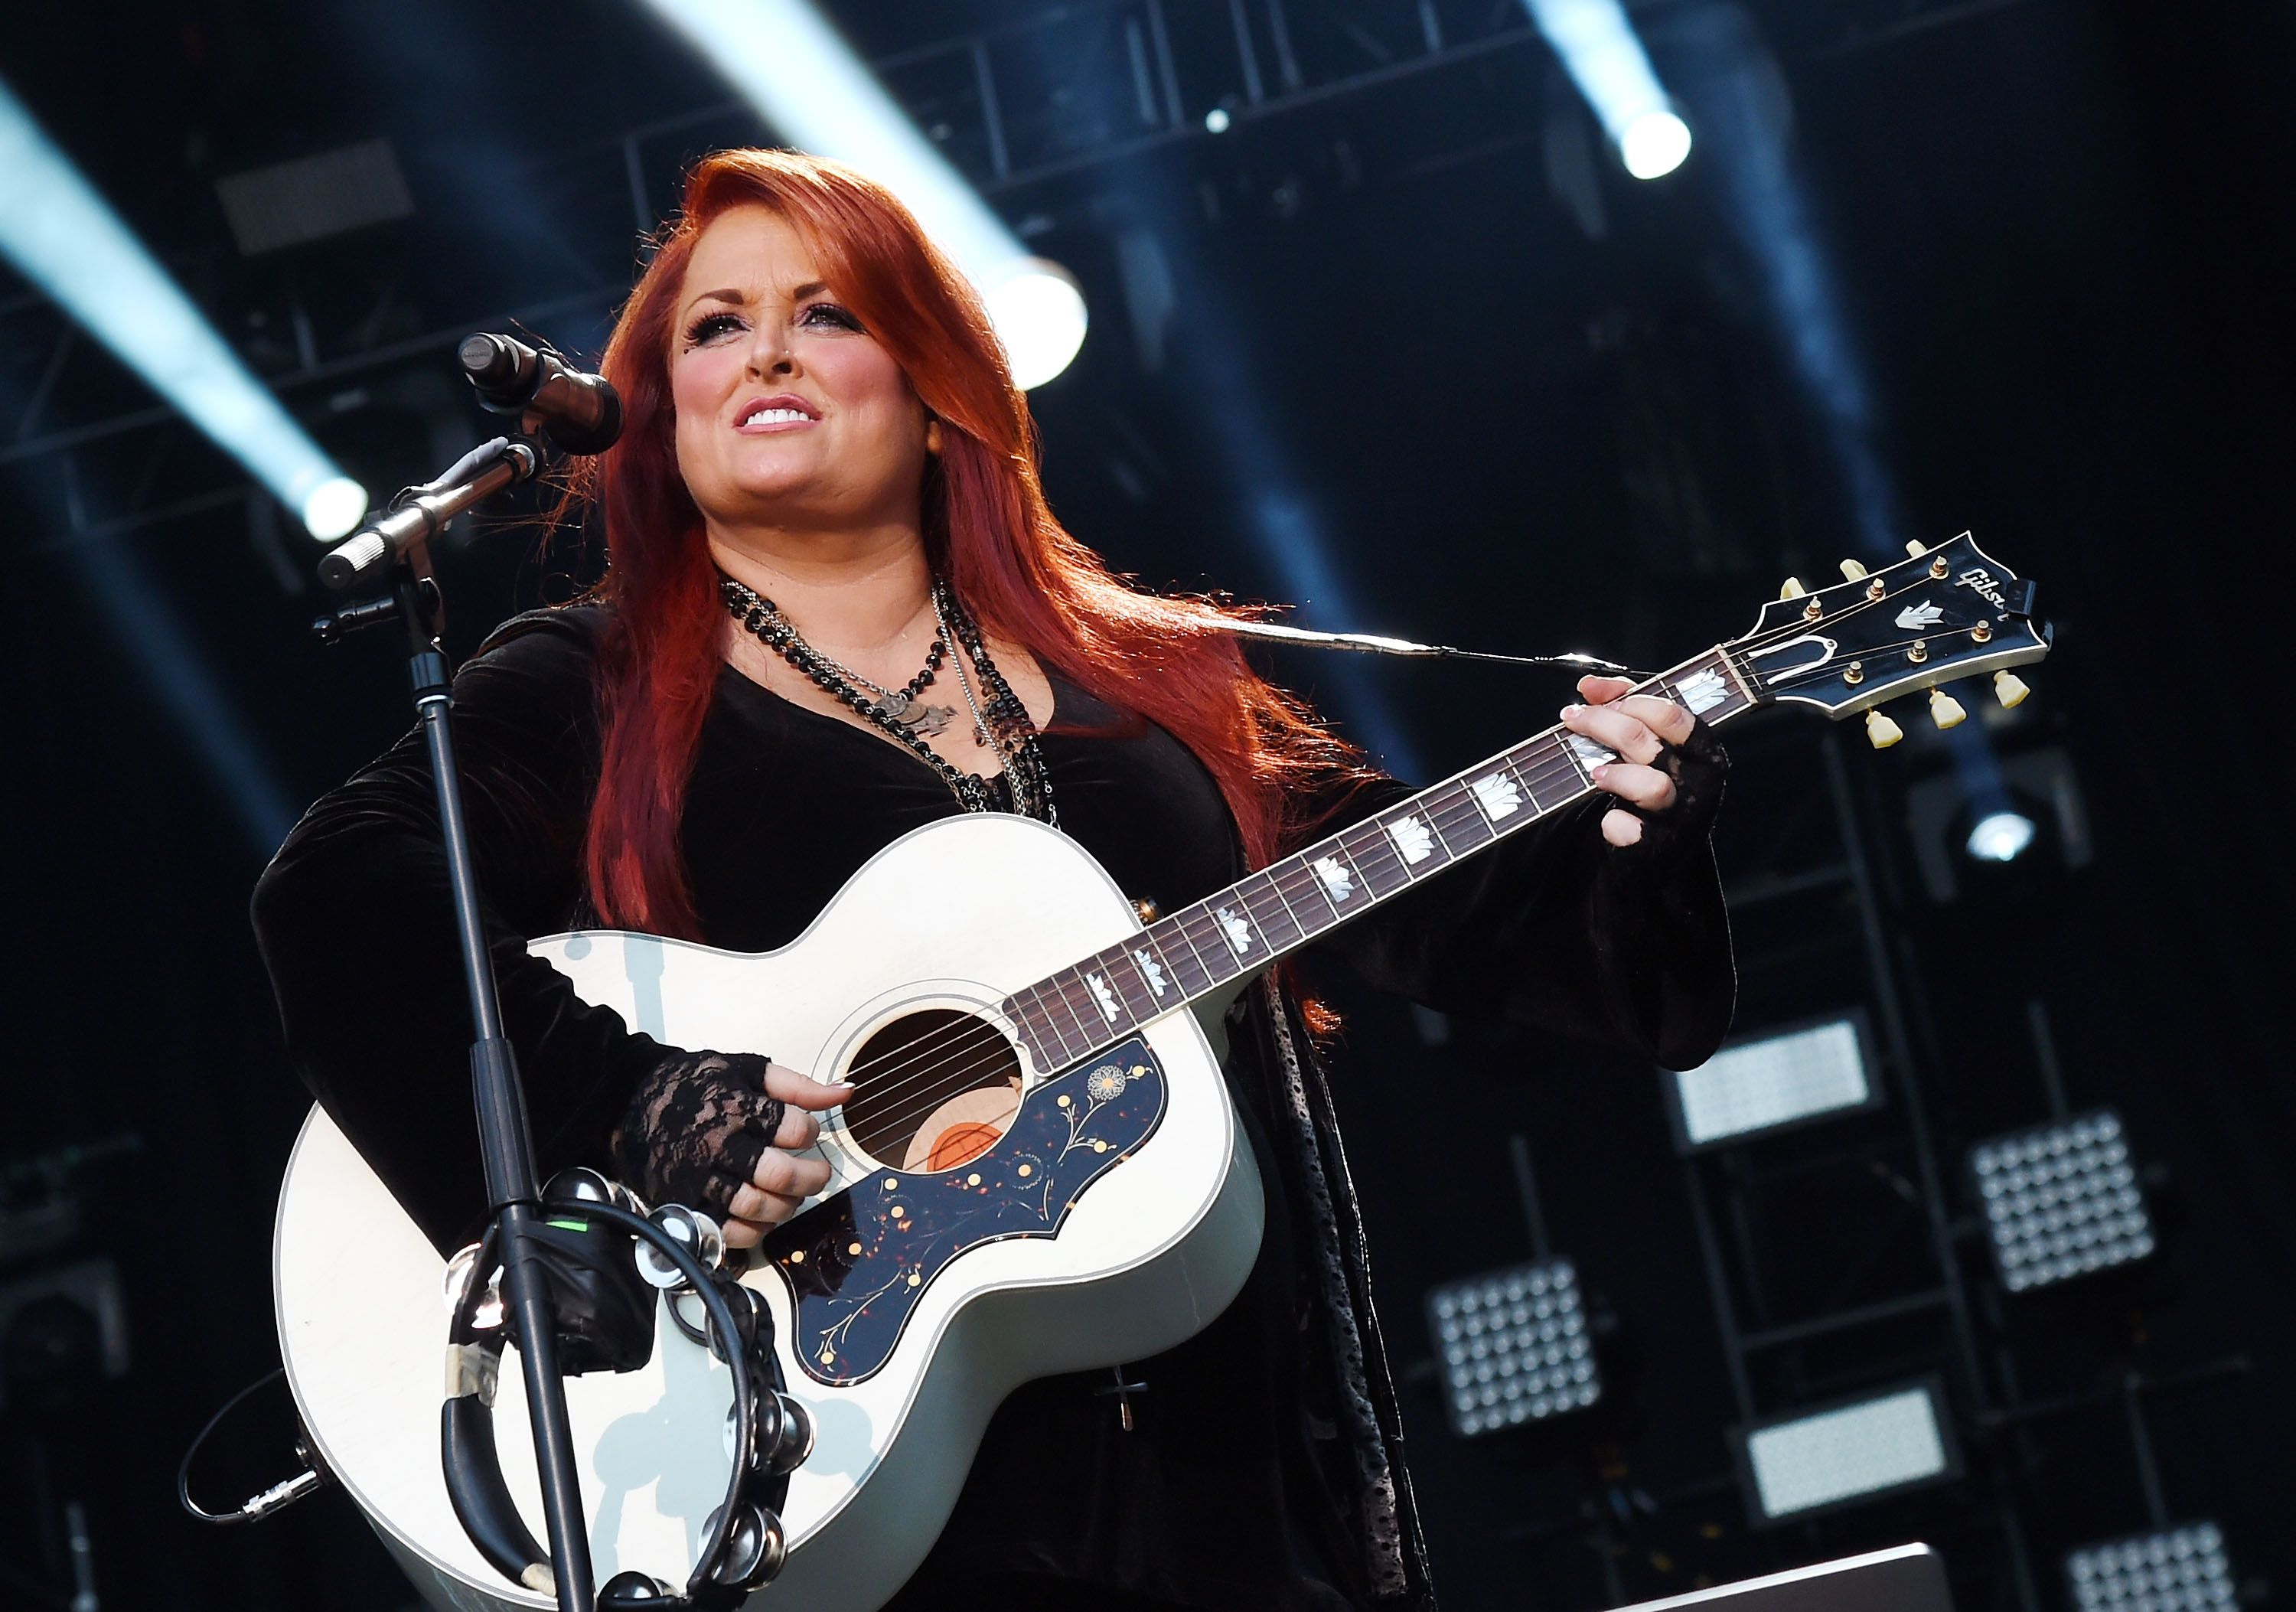 Wynonna Judd of Wynonna & The Big Noise performs onstage during the 2015 CMA Festival on June 13, 2015 in Nashville, Tennessee. | Source: Getty Images